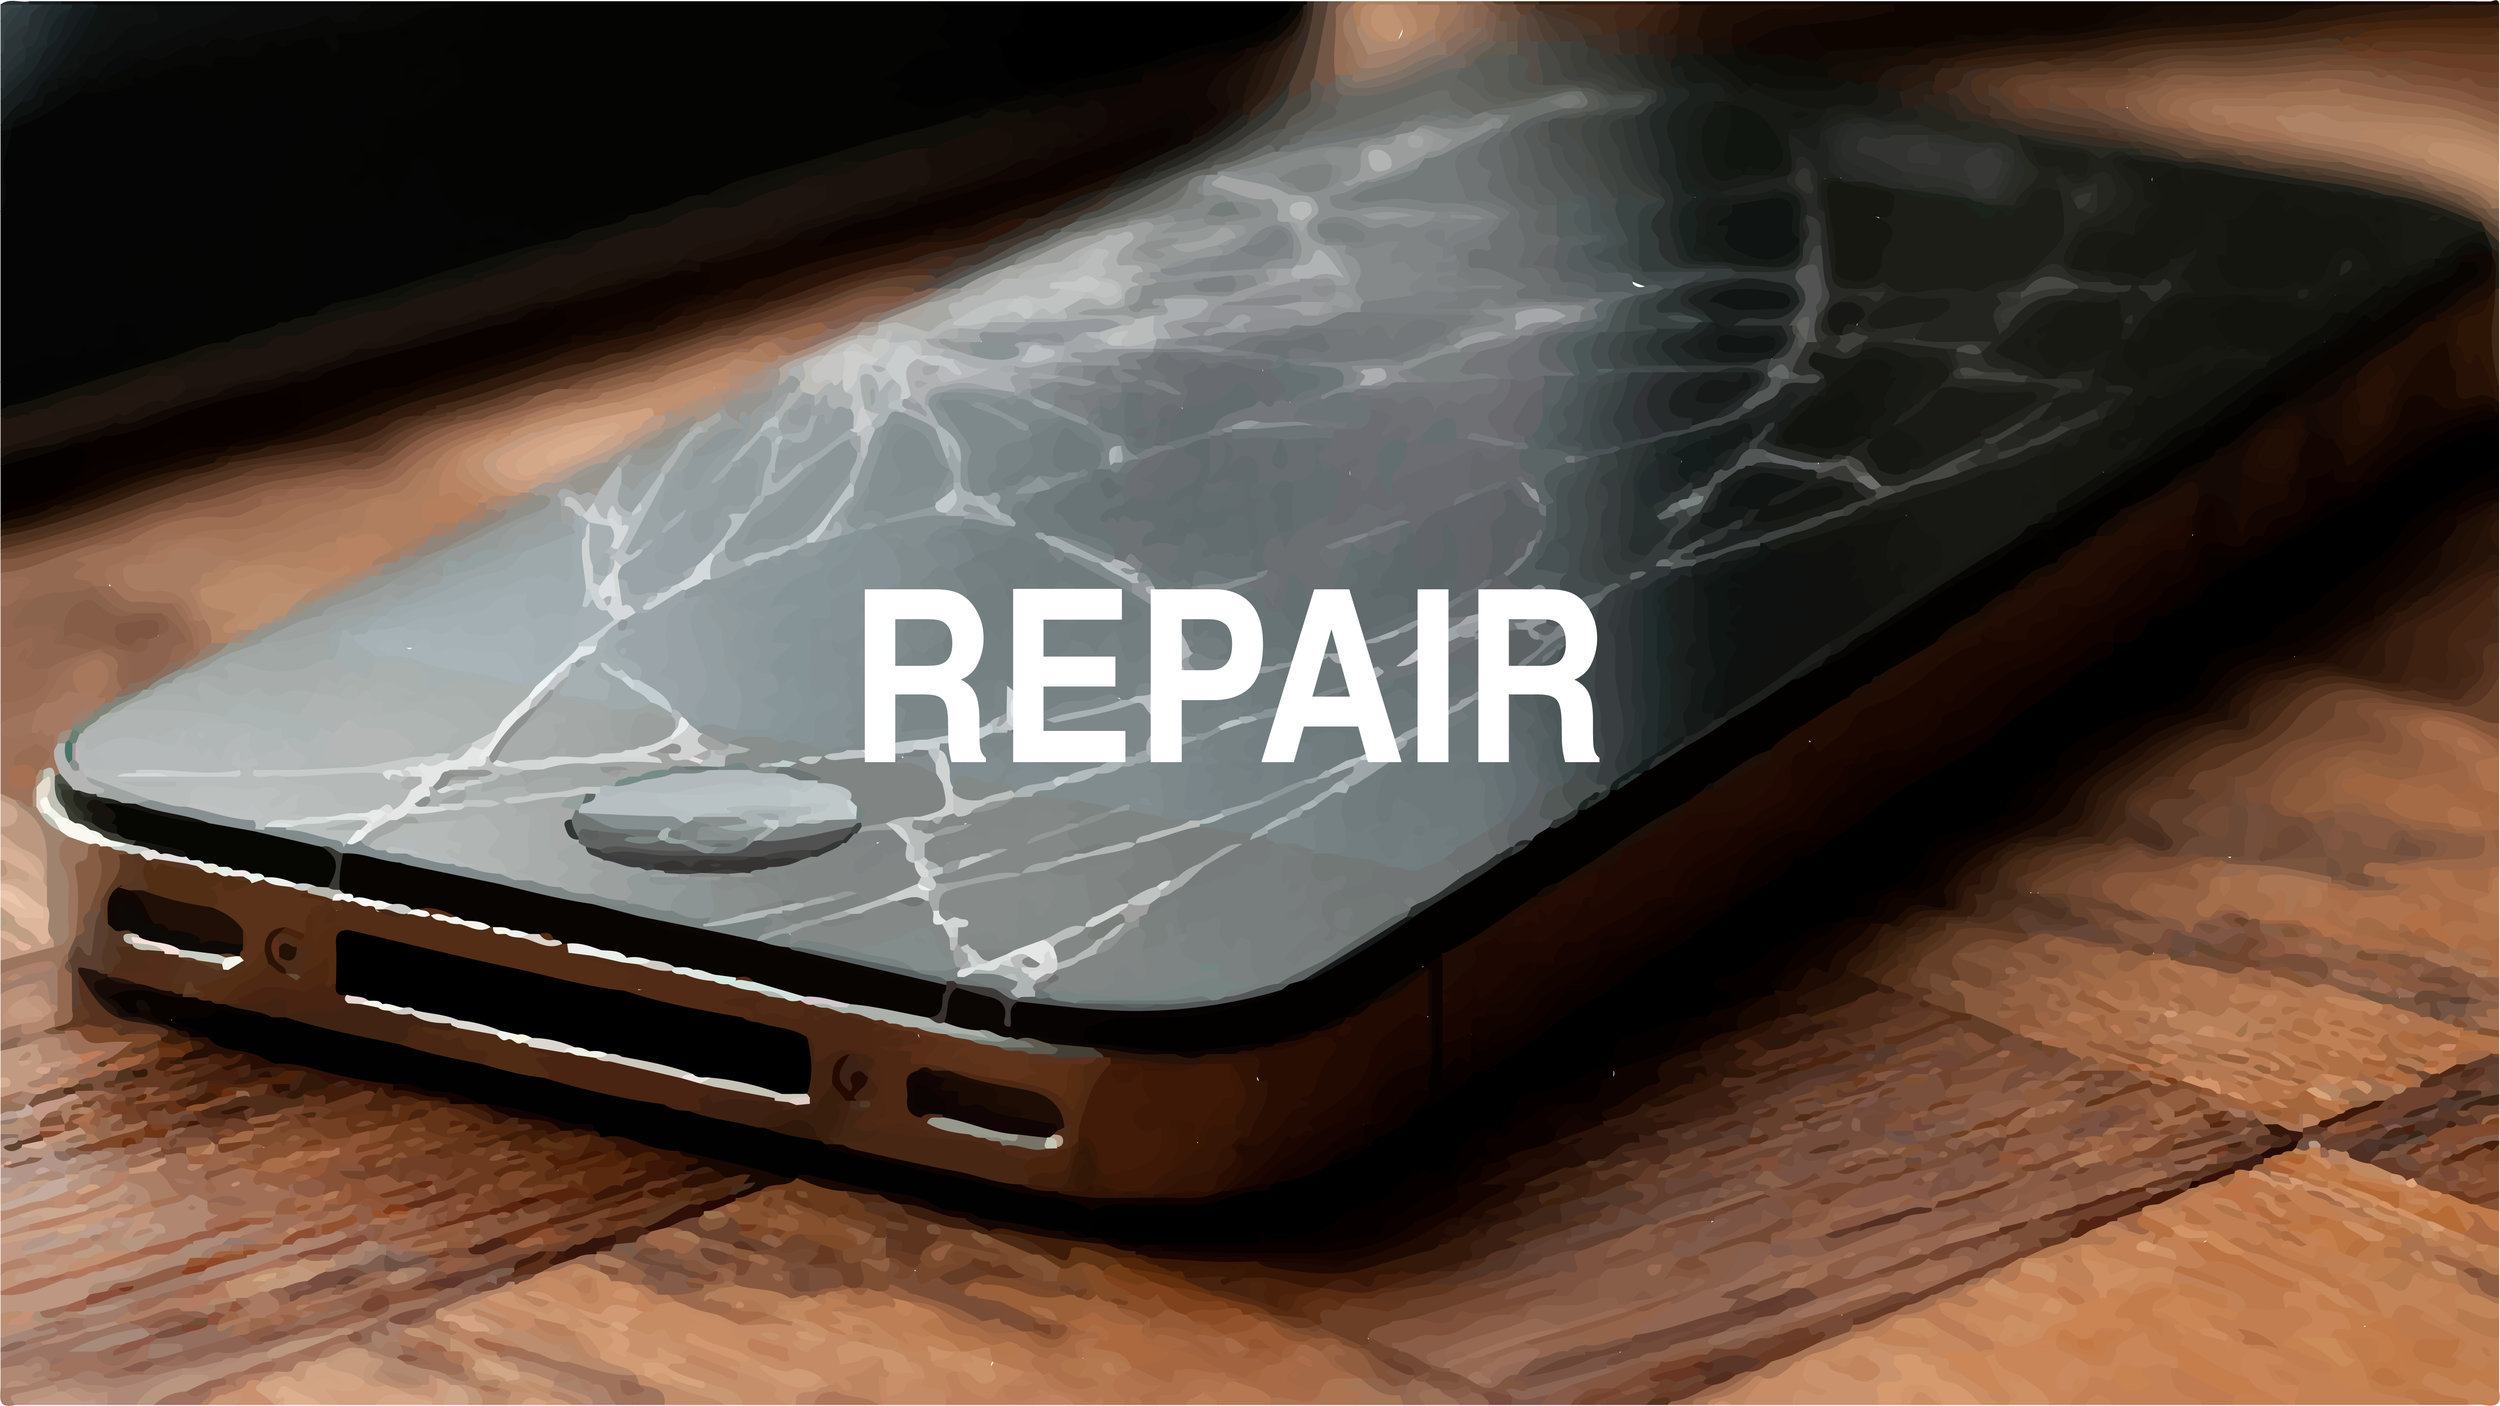 PC, Laptop, tablet and mobile phone repair.